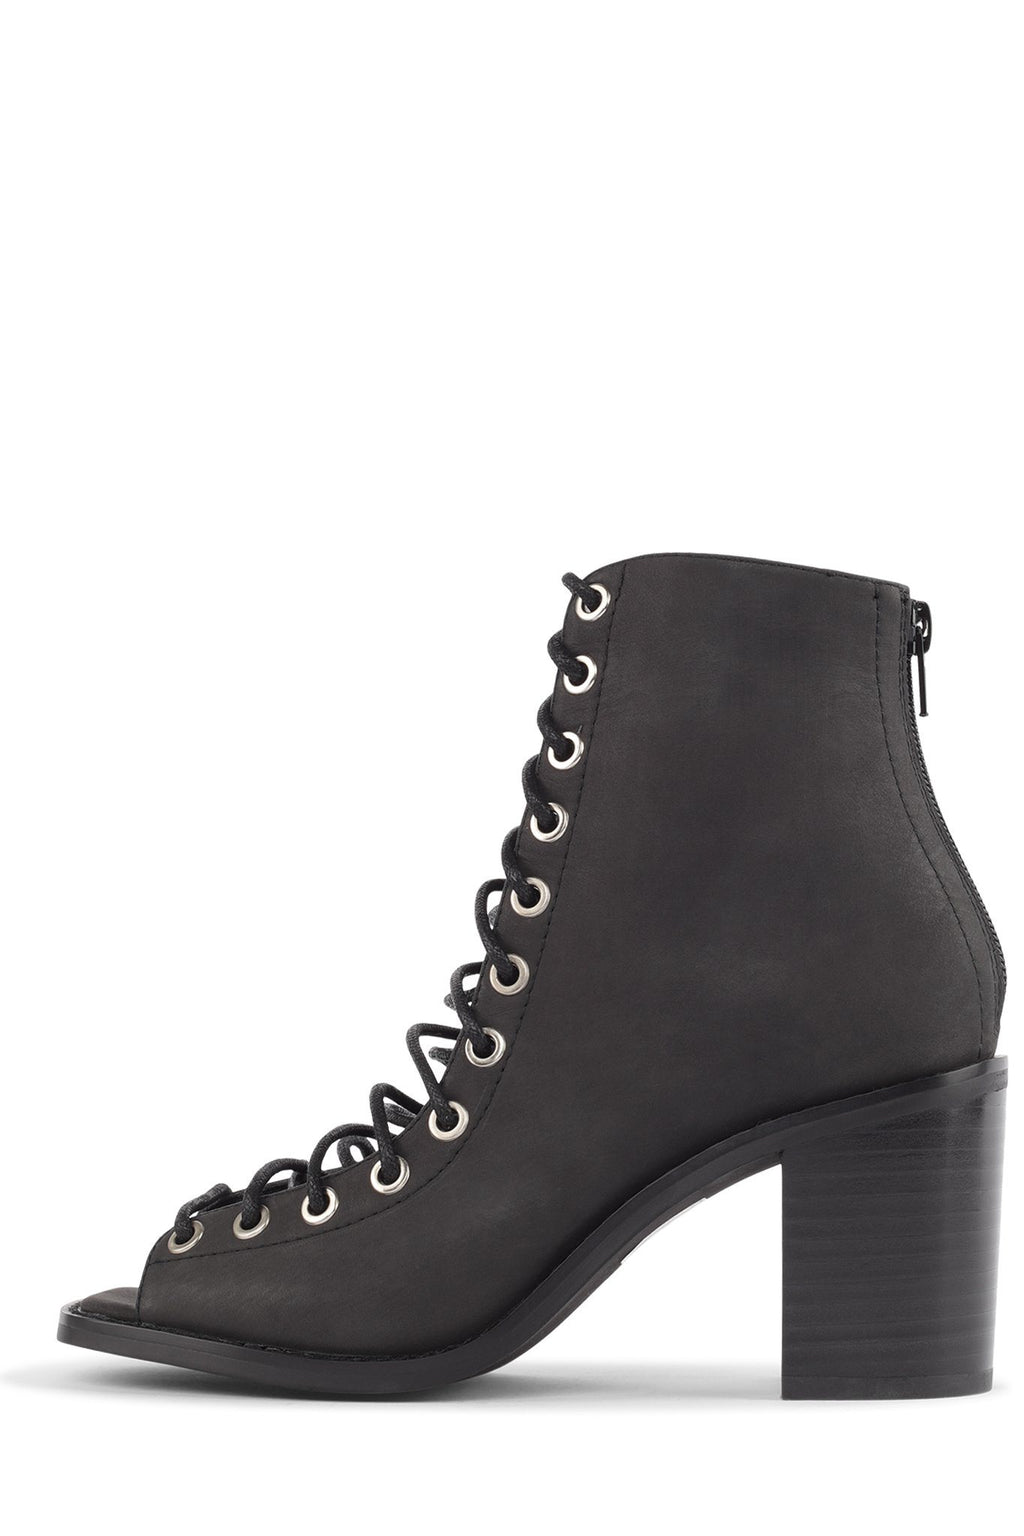 SEPTIMUS Heeled Bootie STRATEGY Black Washed 6